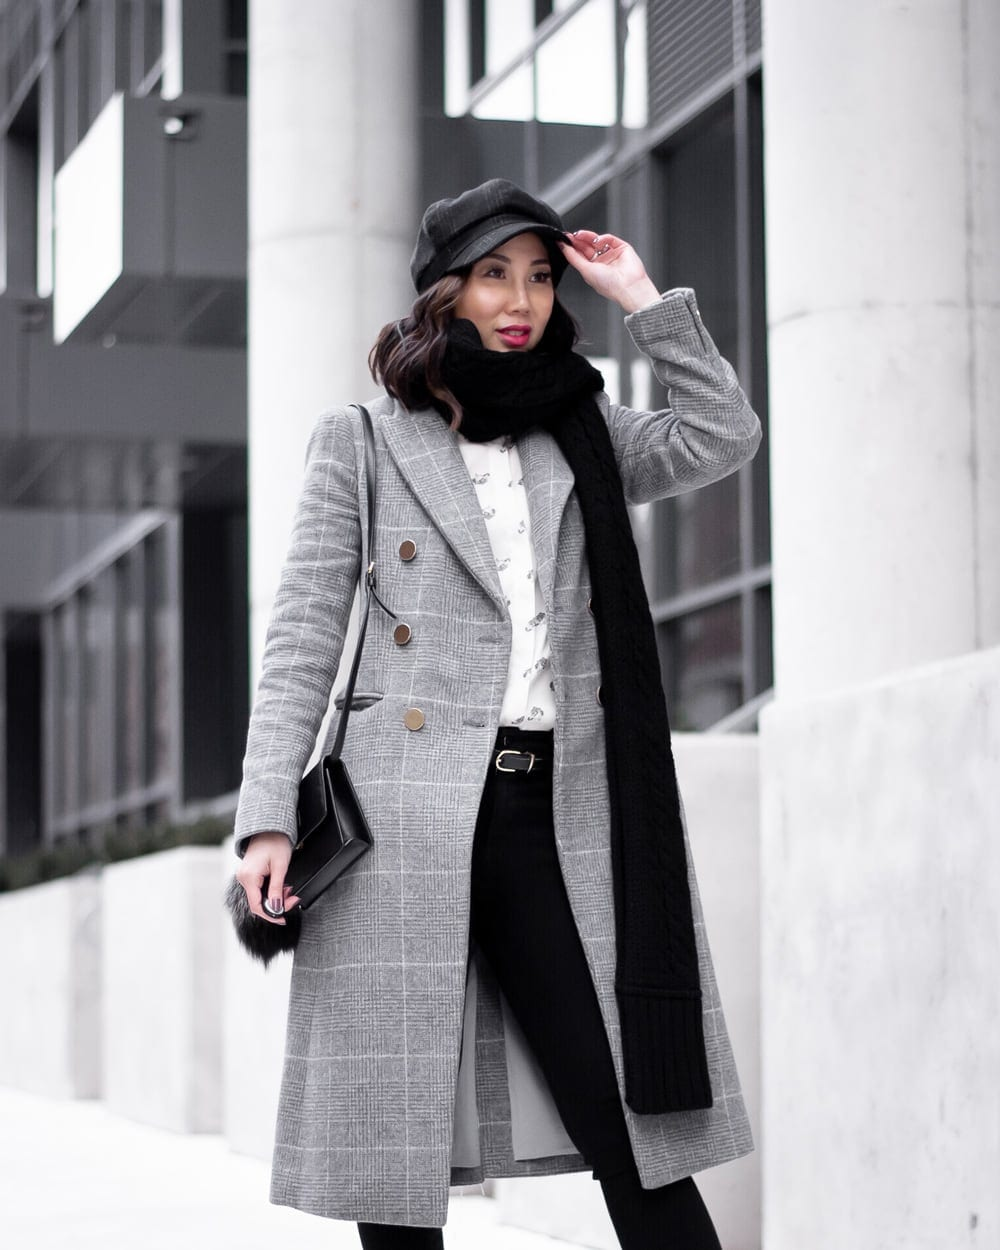 Dressing for the cold - winter ootd